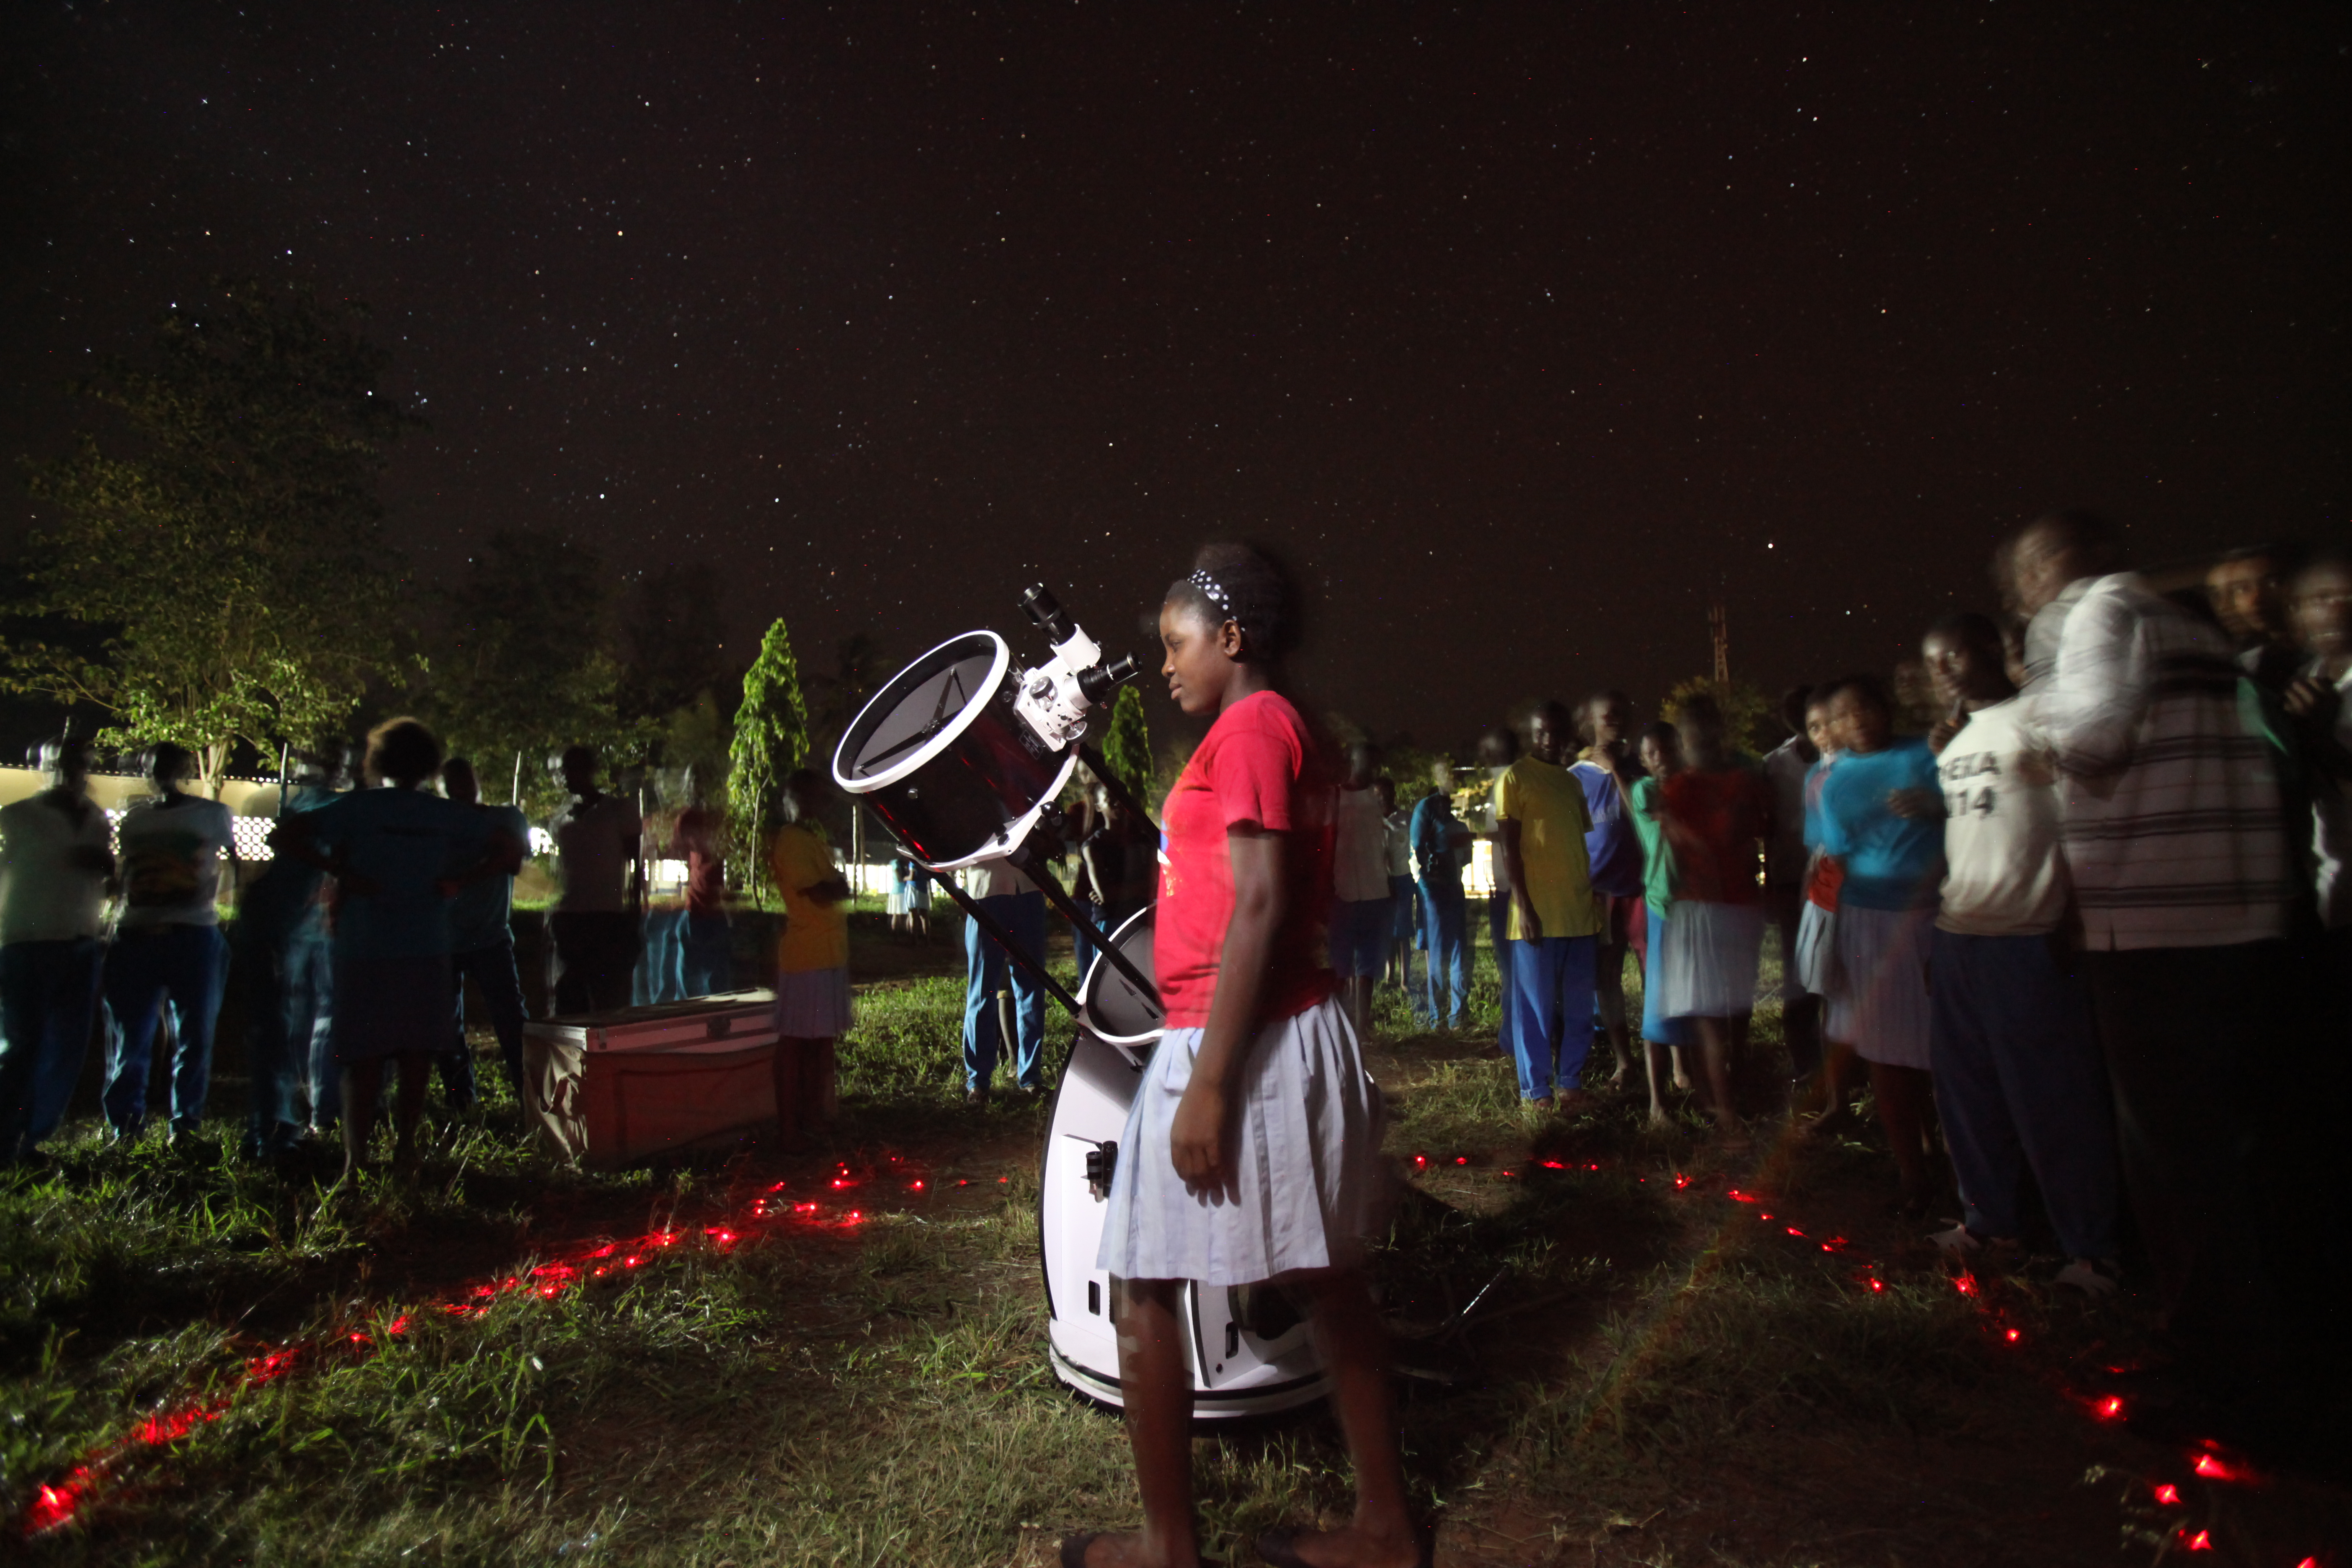 A student at Chumani High School looks through the telescope